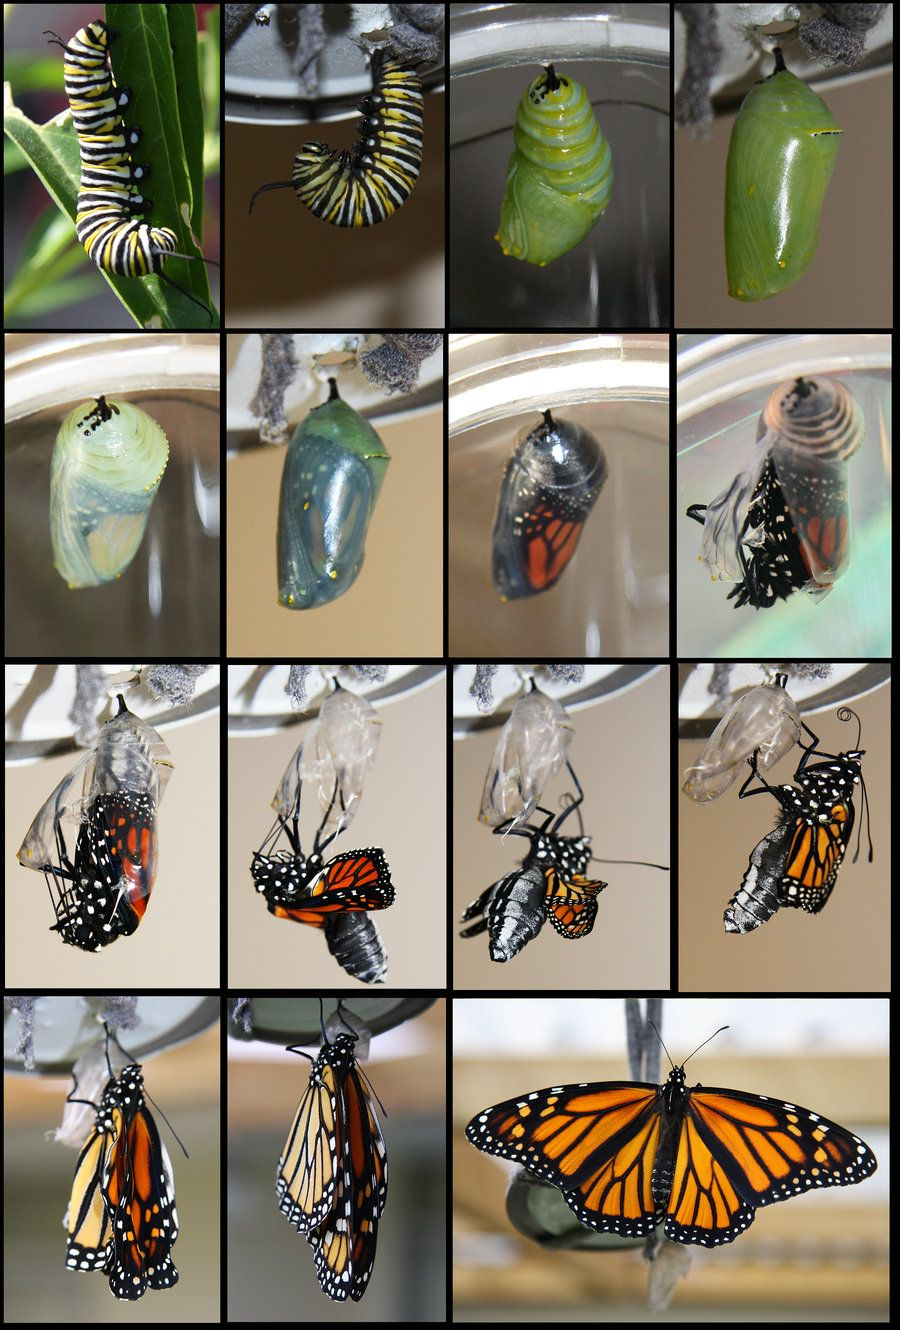 Monarch Butterfly Life Cycle Butterfly Life Cycle Monarch Butterfly Life Cycles [ 1330 x 900 Pixel ]